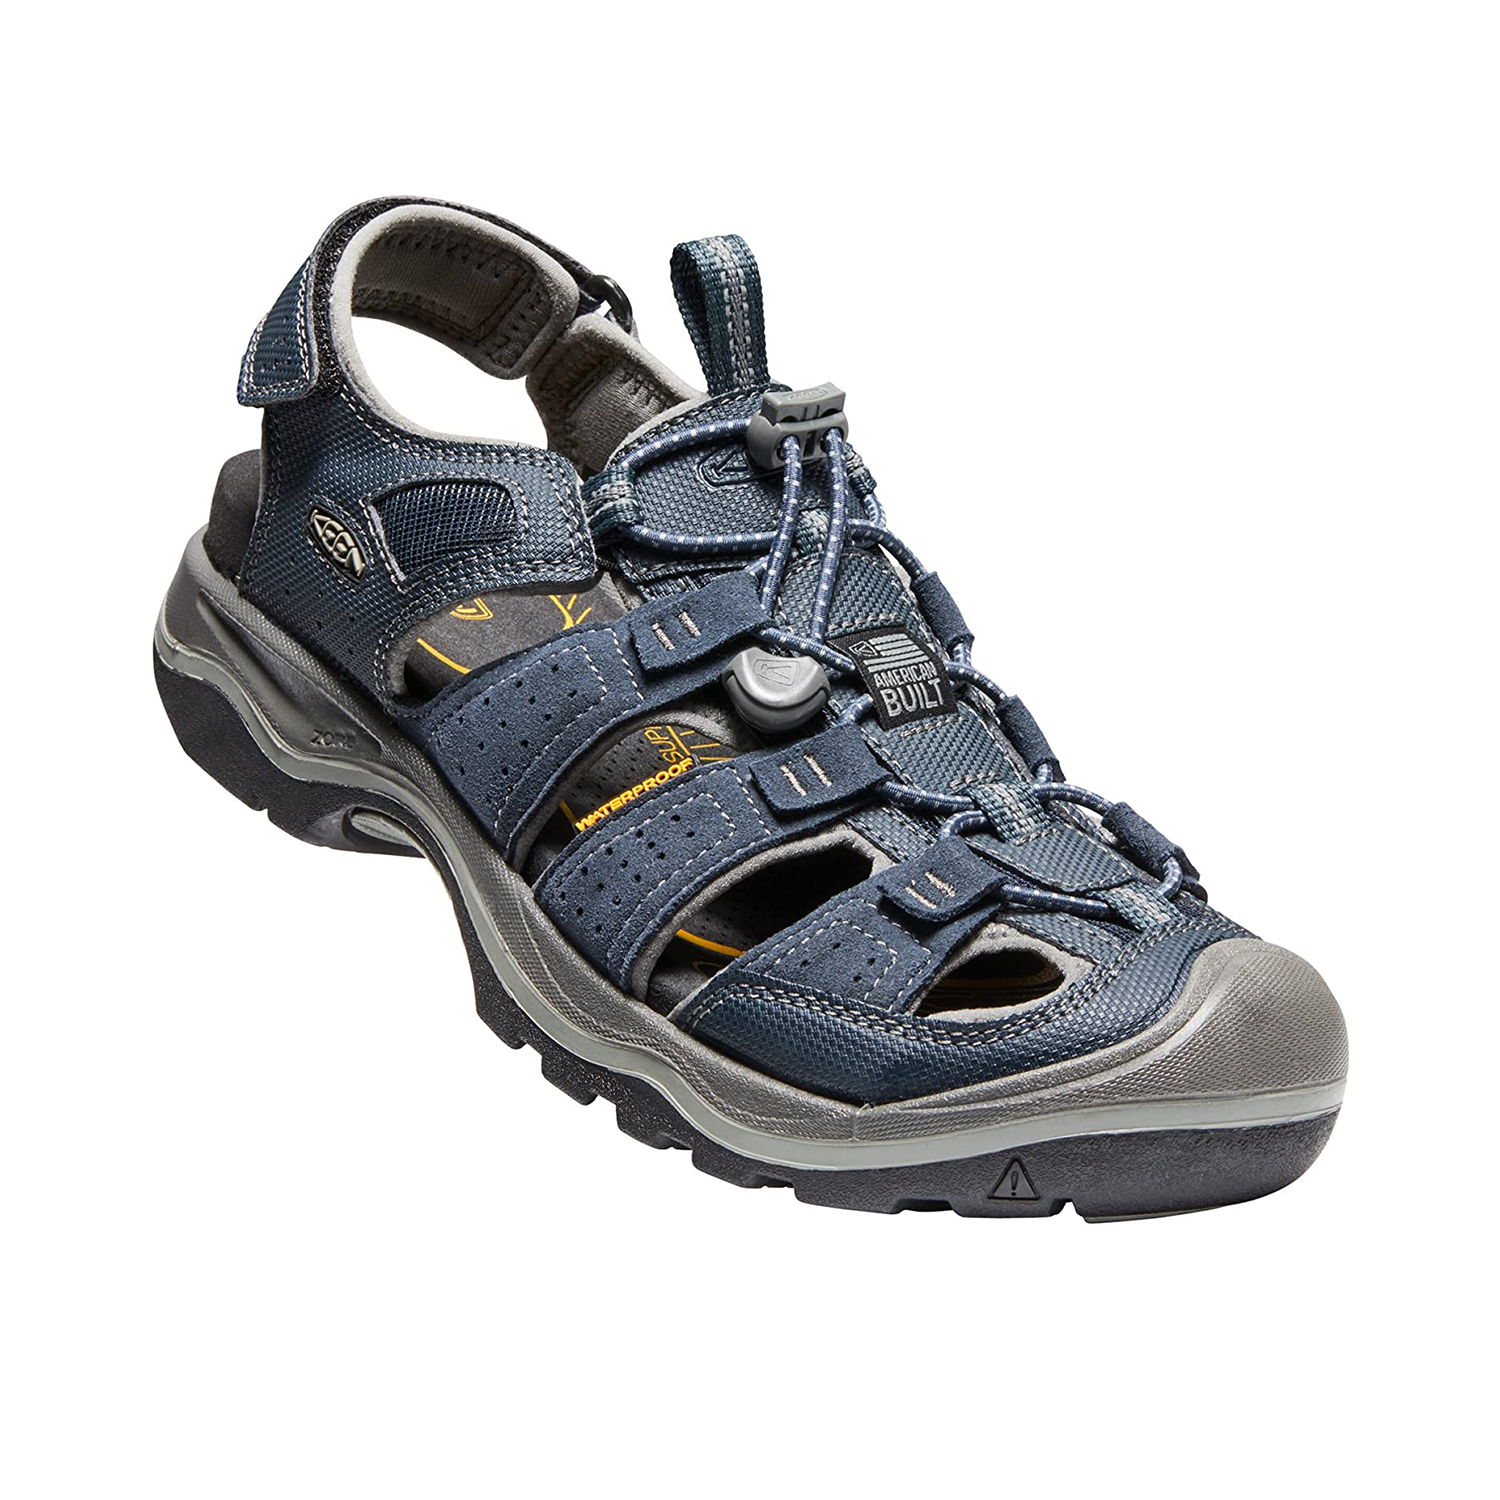 KEEN - Men's Rialto H2 Sandal for the Outdoors